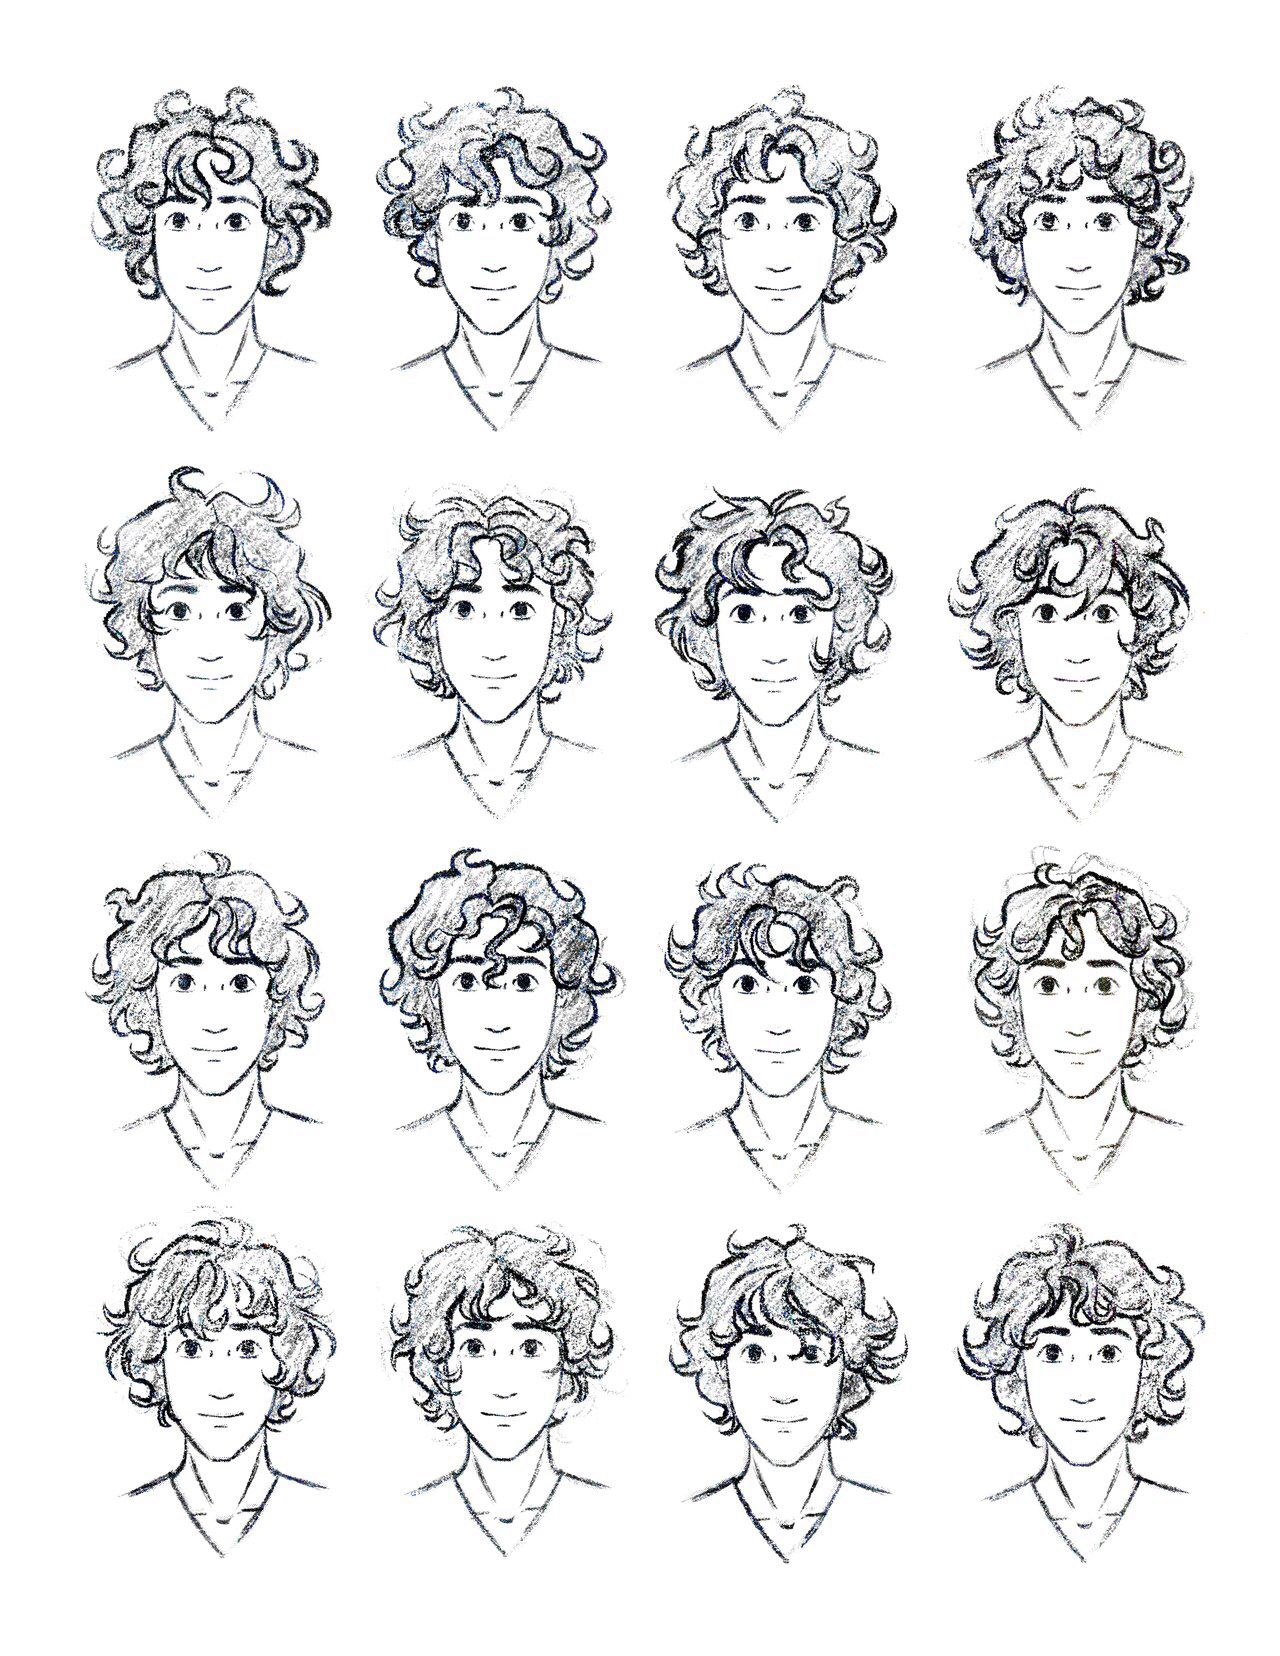 15+ Best New Anime Boy With Curly Hair Drawing Easy